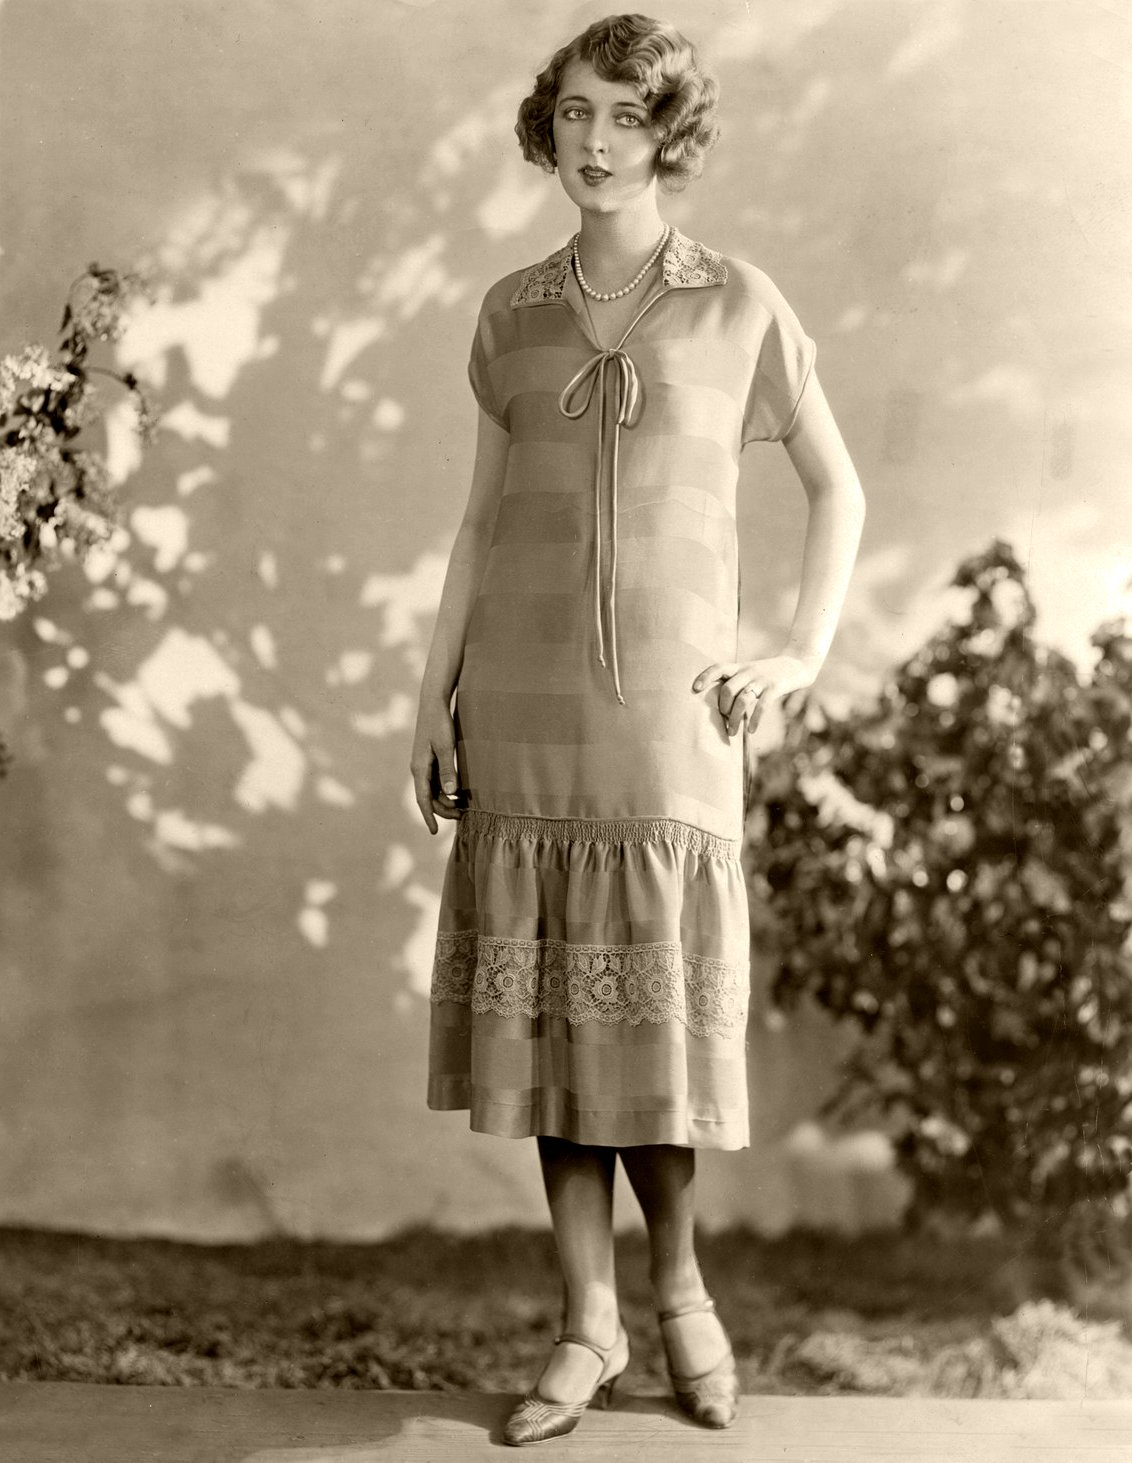 Fashion by Nancy Spence 1925